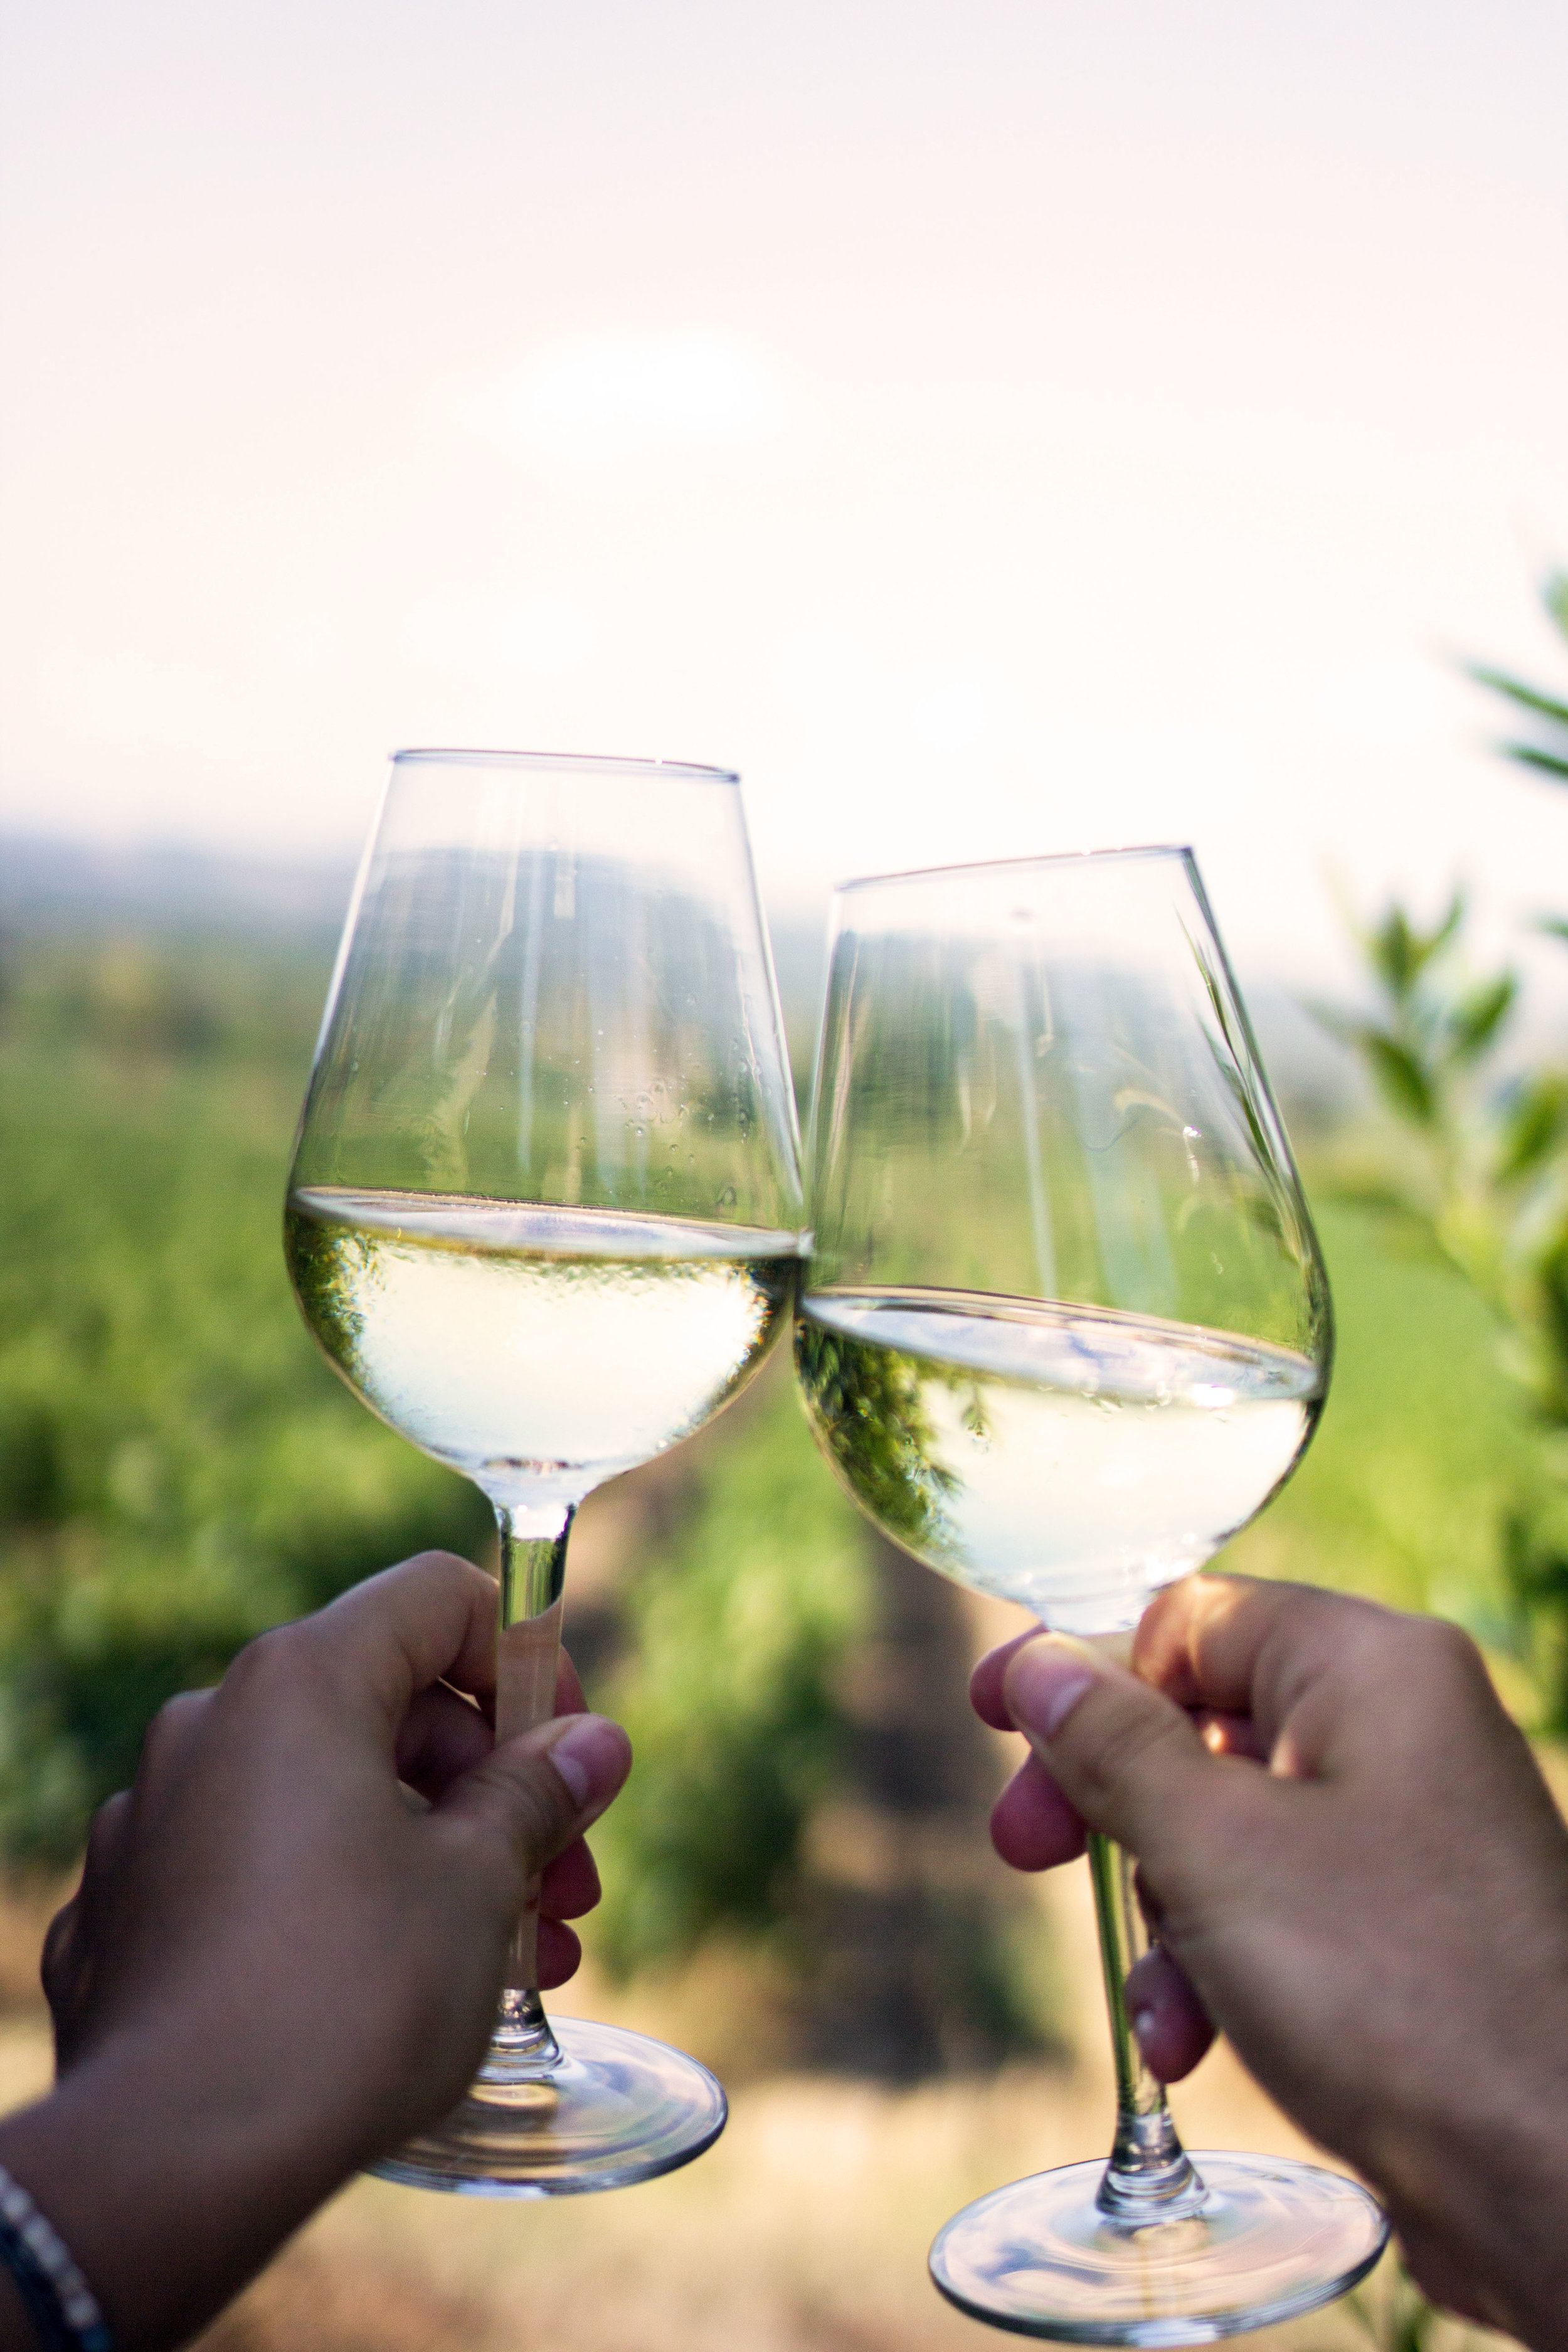 Two glasses of wine clinking